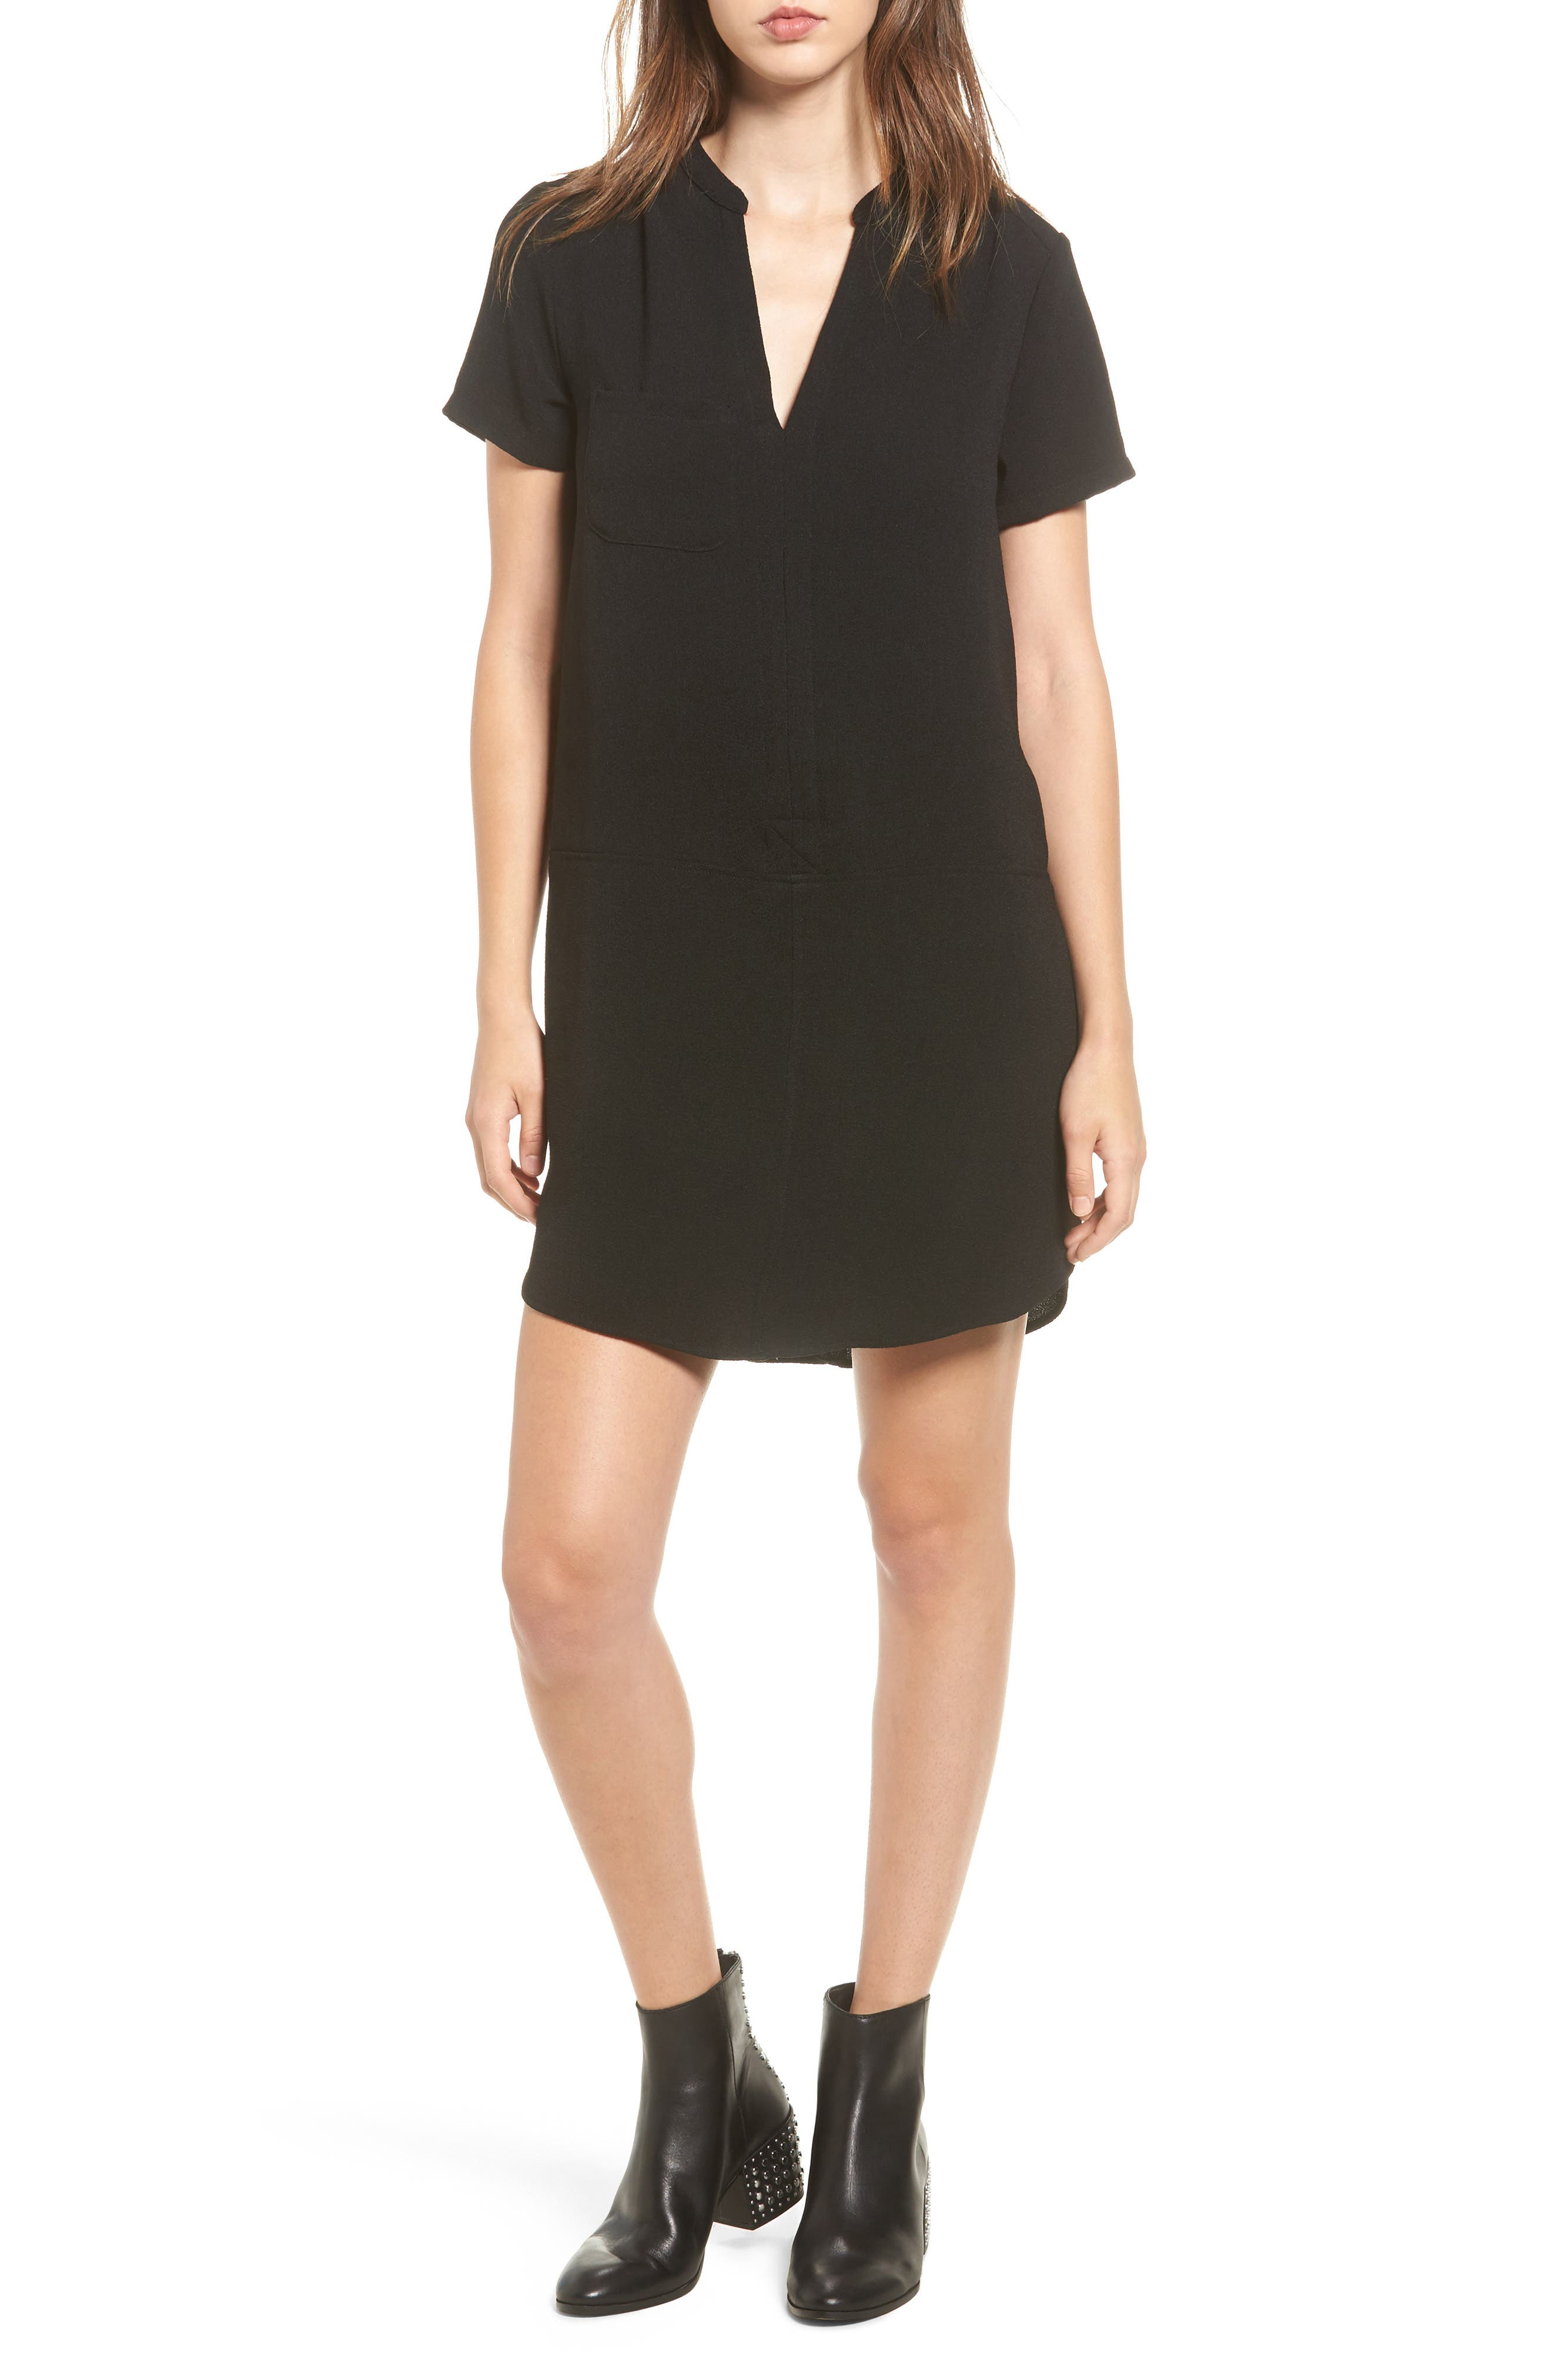 When you want to look stylish fast, reach for this split-neck crepe shift-its simple, classic silhouette can stay casual or go more formal. Style Name: Hailey Crepe Dress. Style Number: 5387390 17. Available in stores.